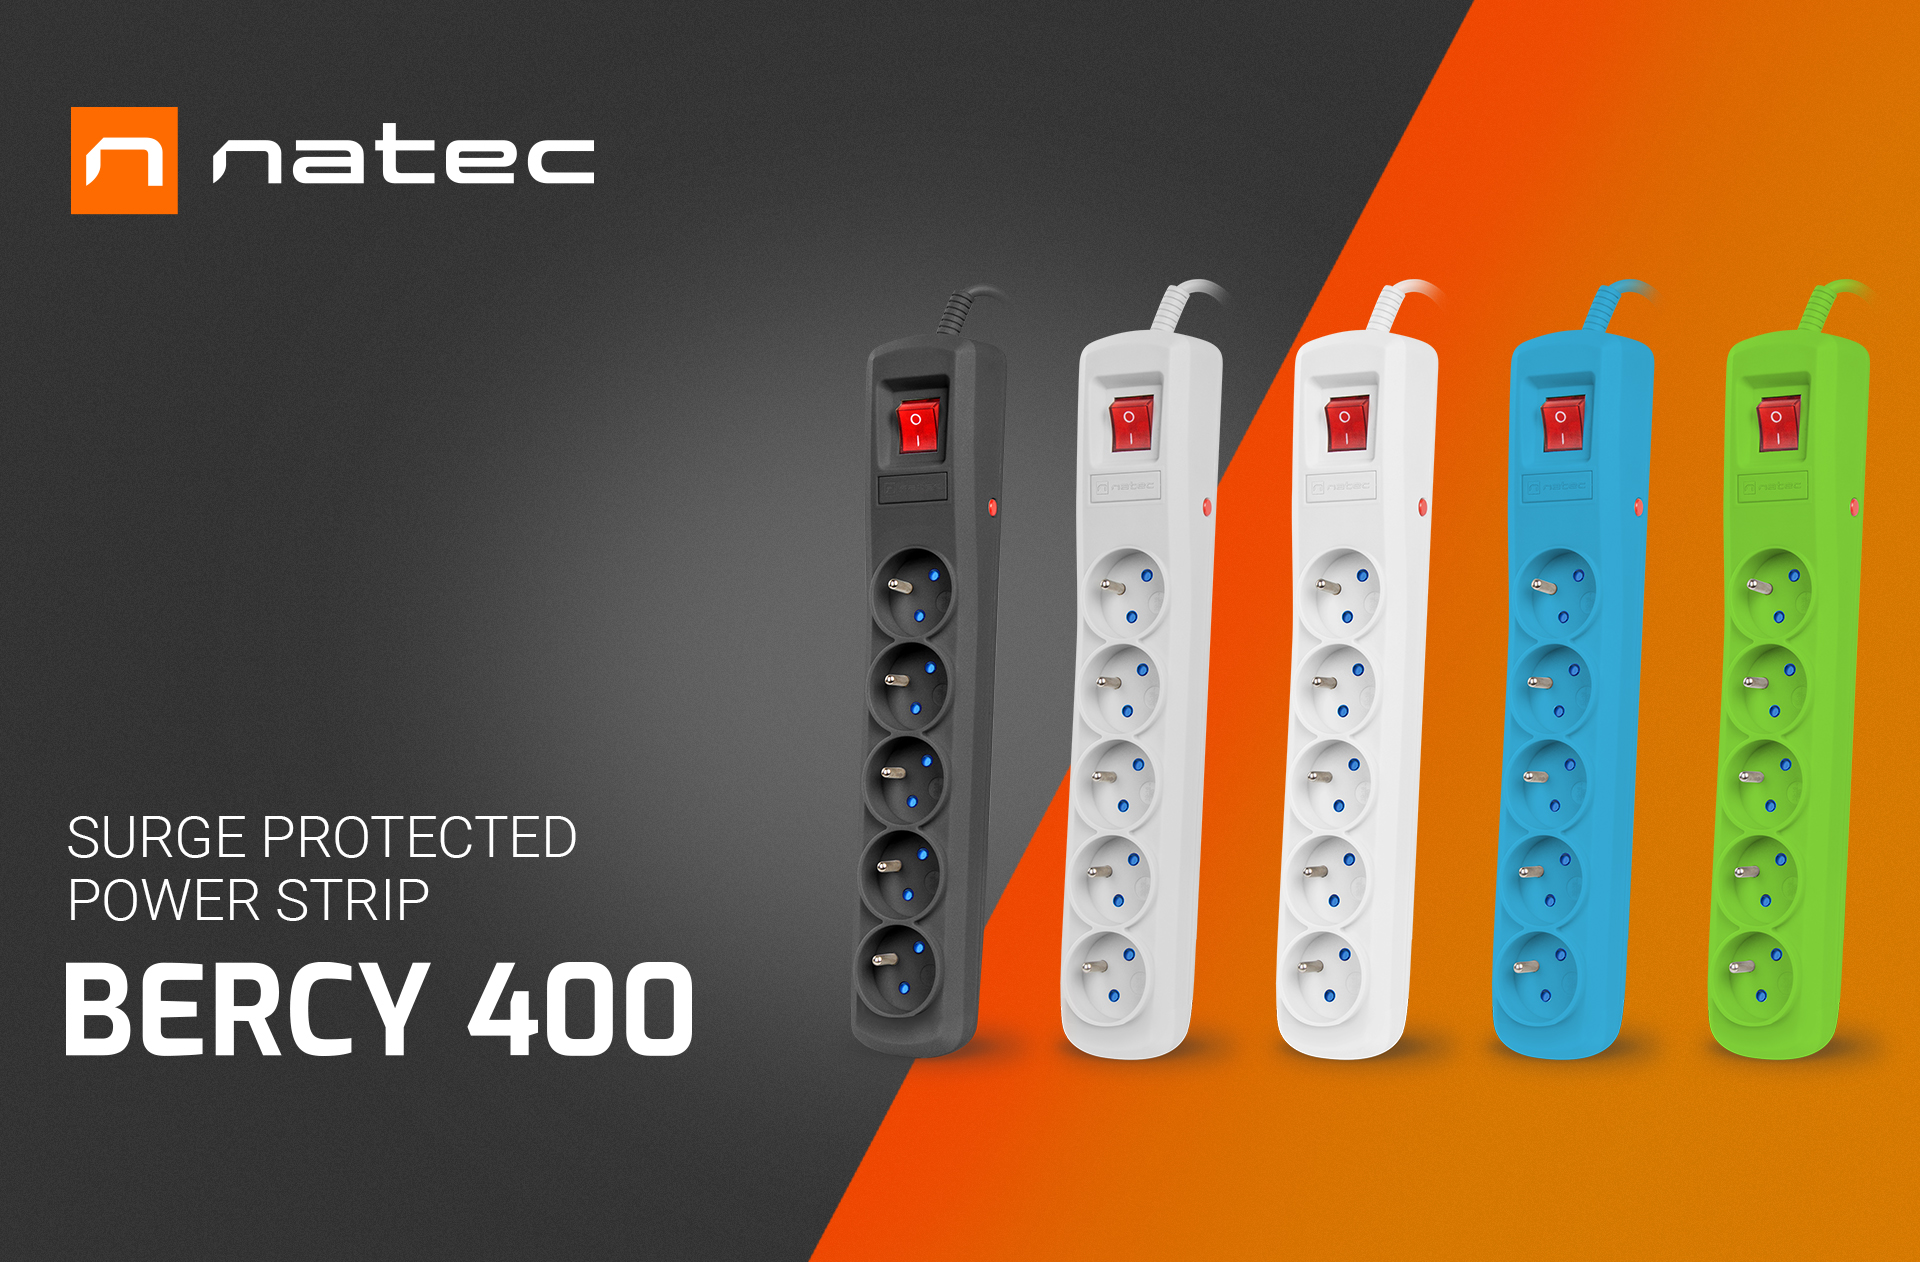 surge protector natec bercy 400 1.5m 5x french outlets green 1